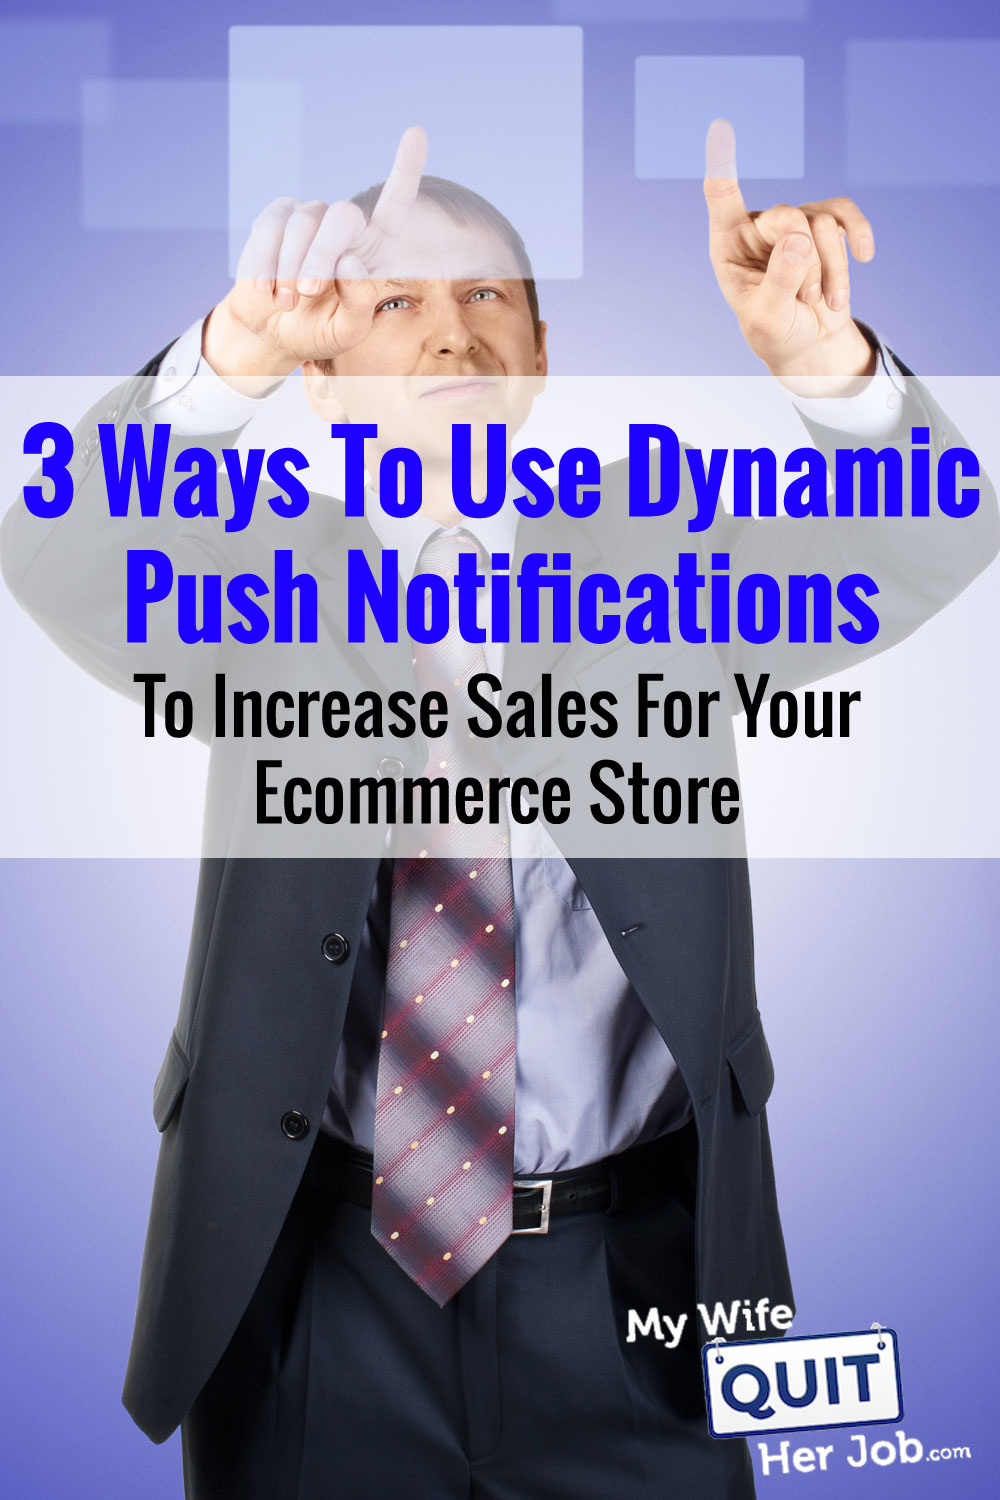 3 Ways To Use Dynamic Push Notifications To Increase Sales For Your Online Store